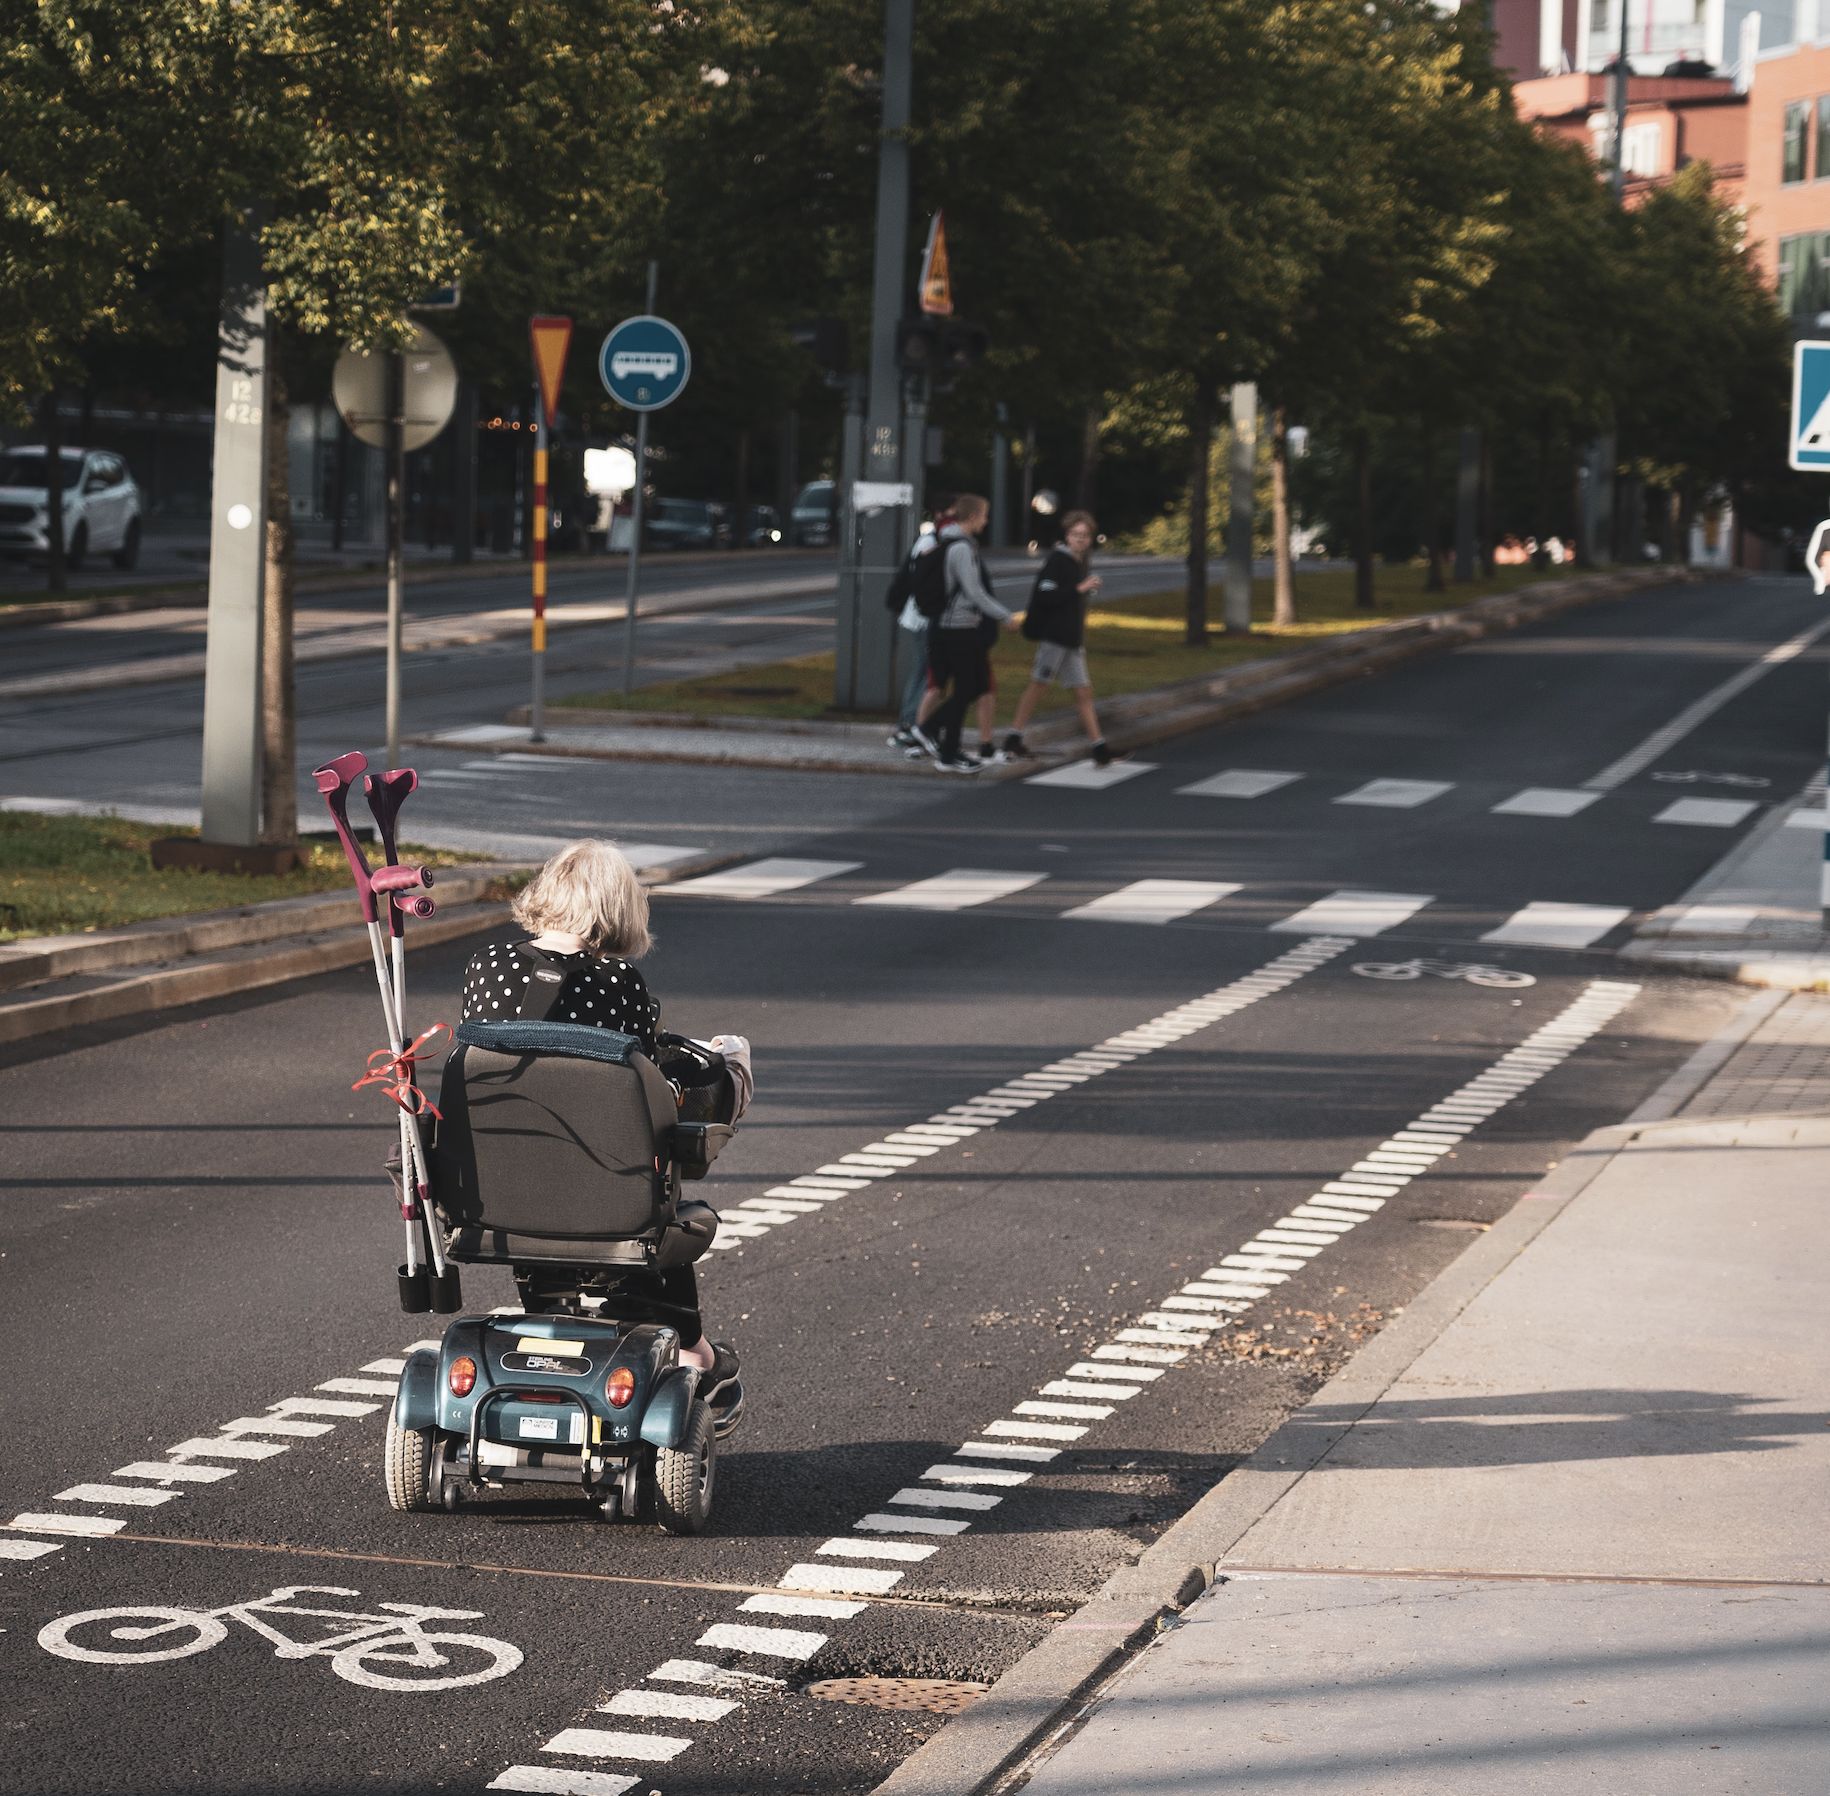 Photo of a person using a motorised wheelchair moving along a bike lane on a road